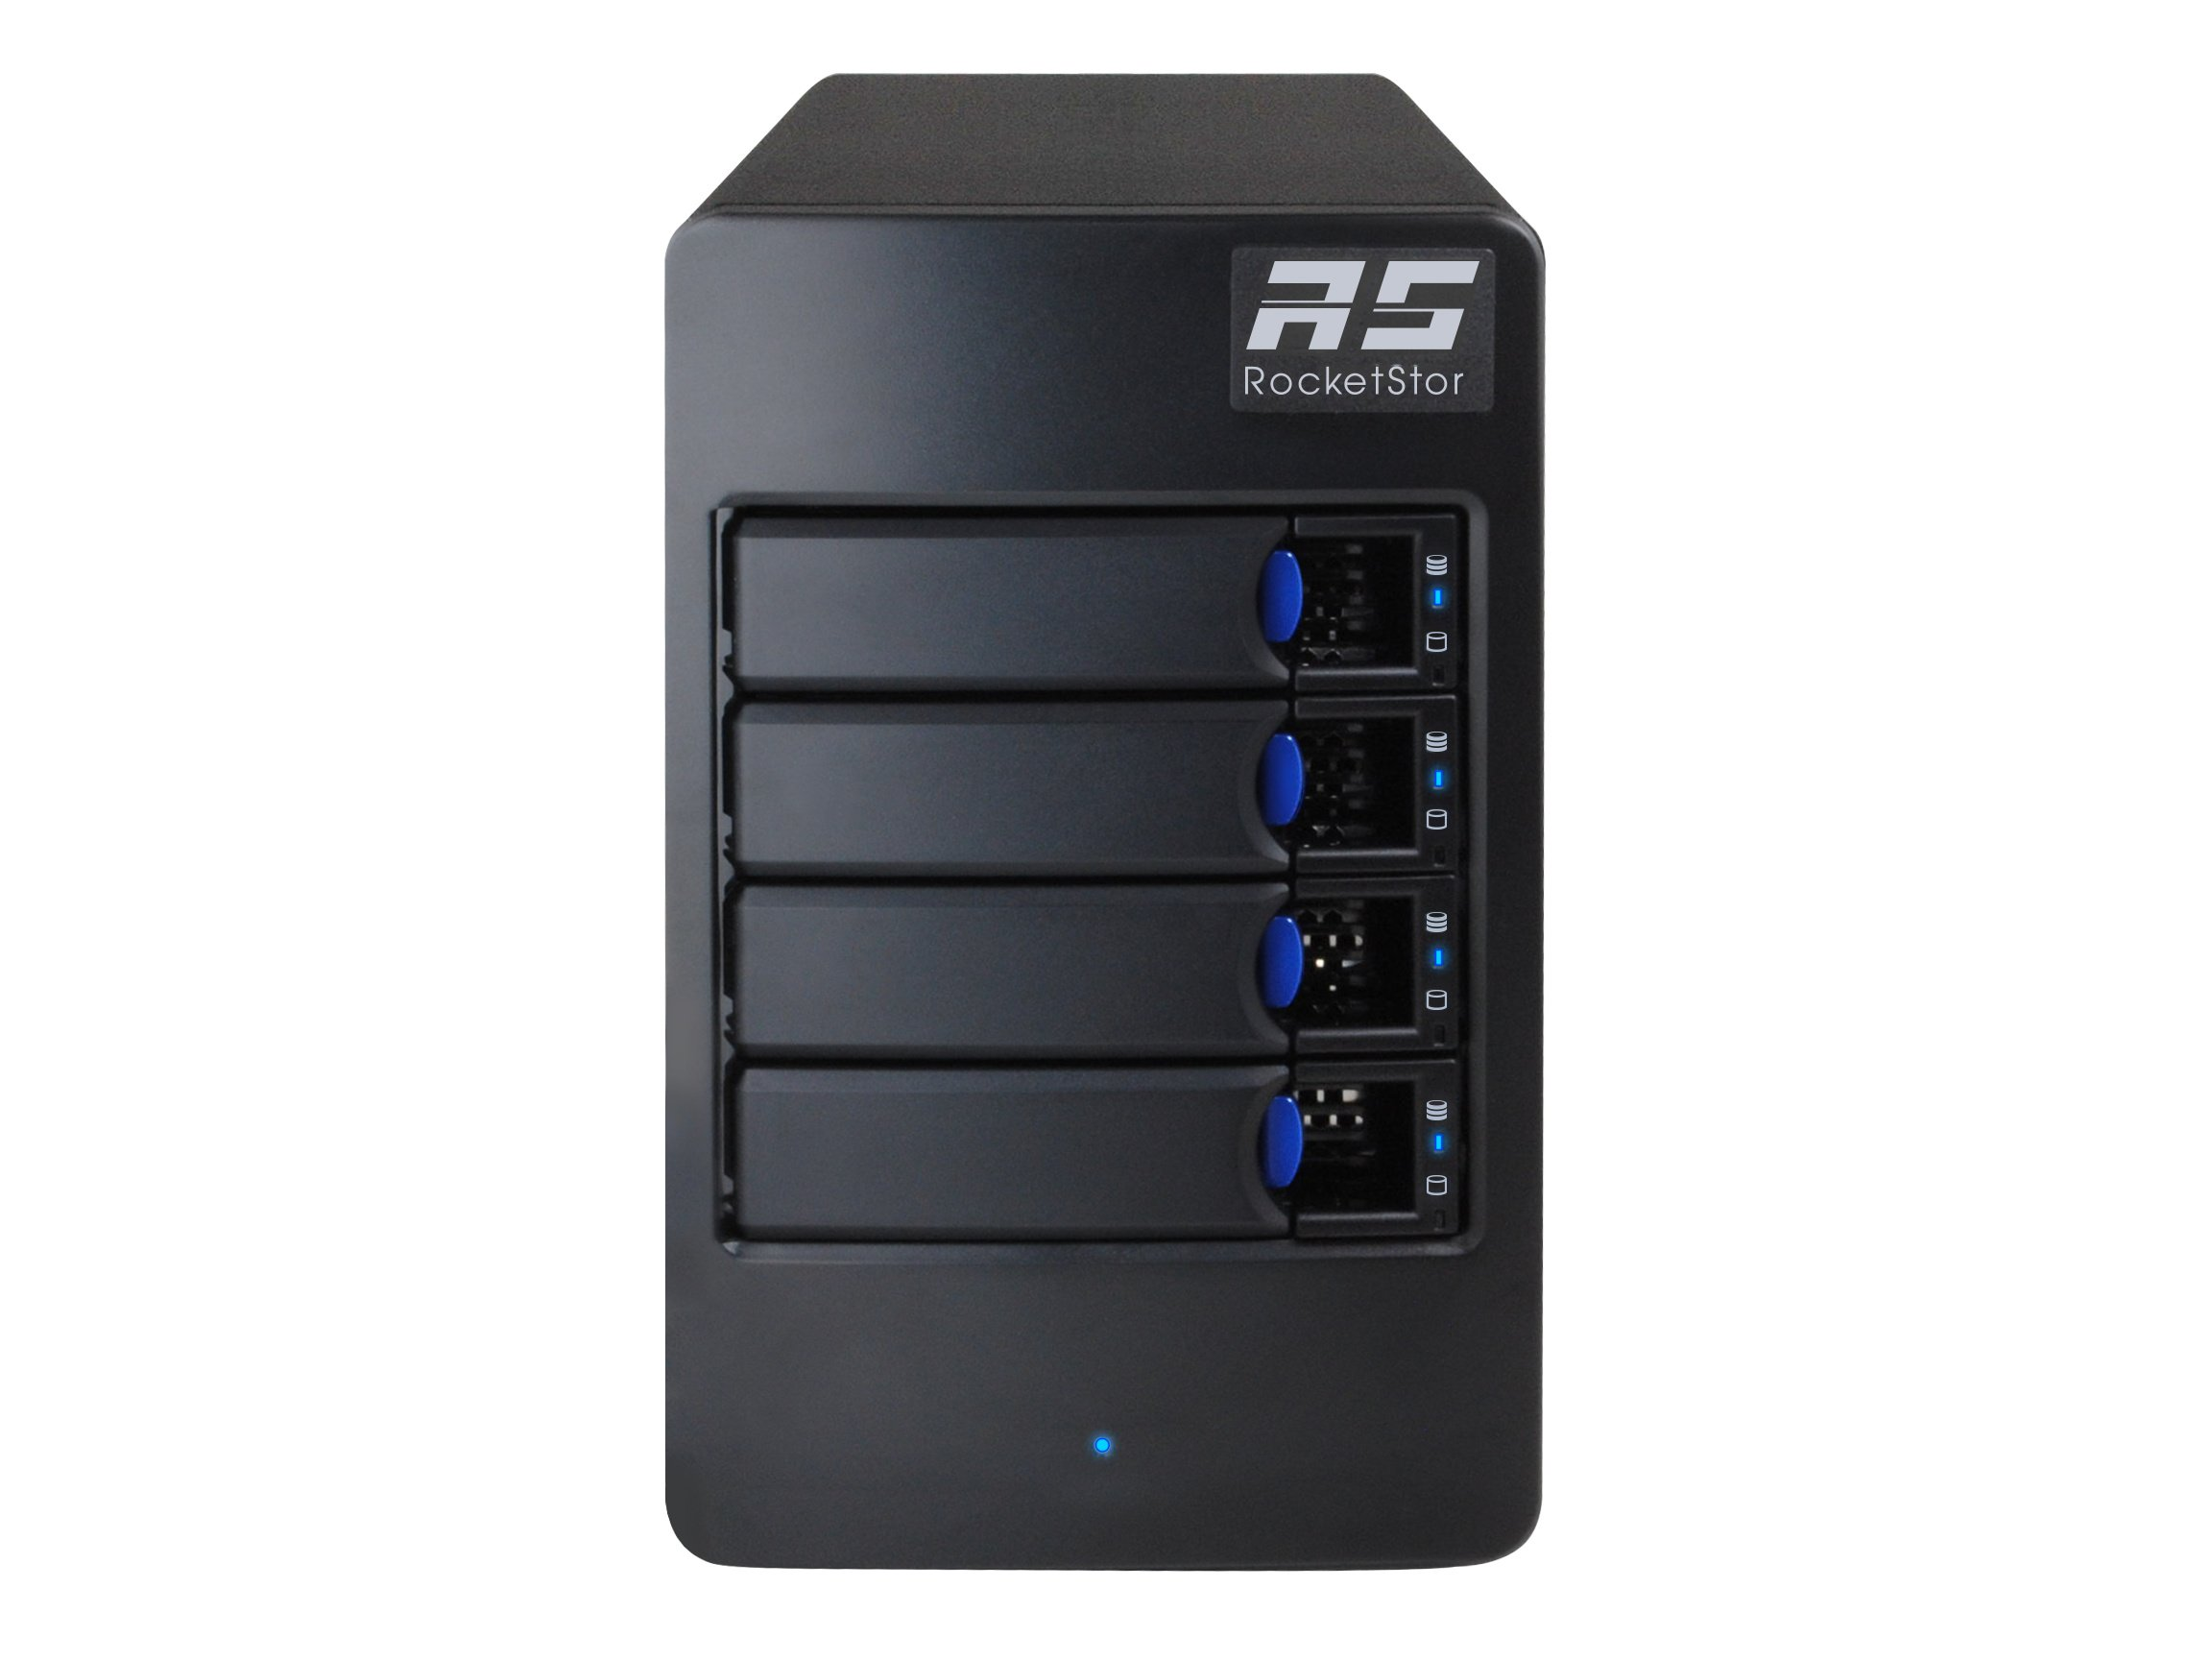 HighPoint RocketStor 6114V 4-Bay Raid 5 USB 3.1 Gen 2 Storage Enclosure by High Point